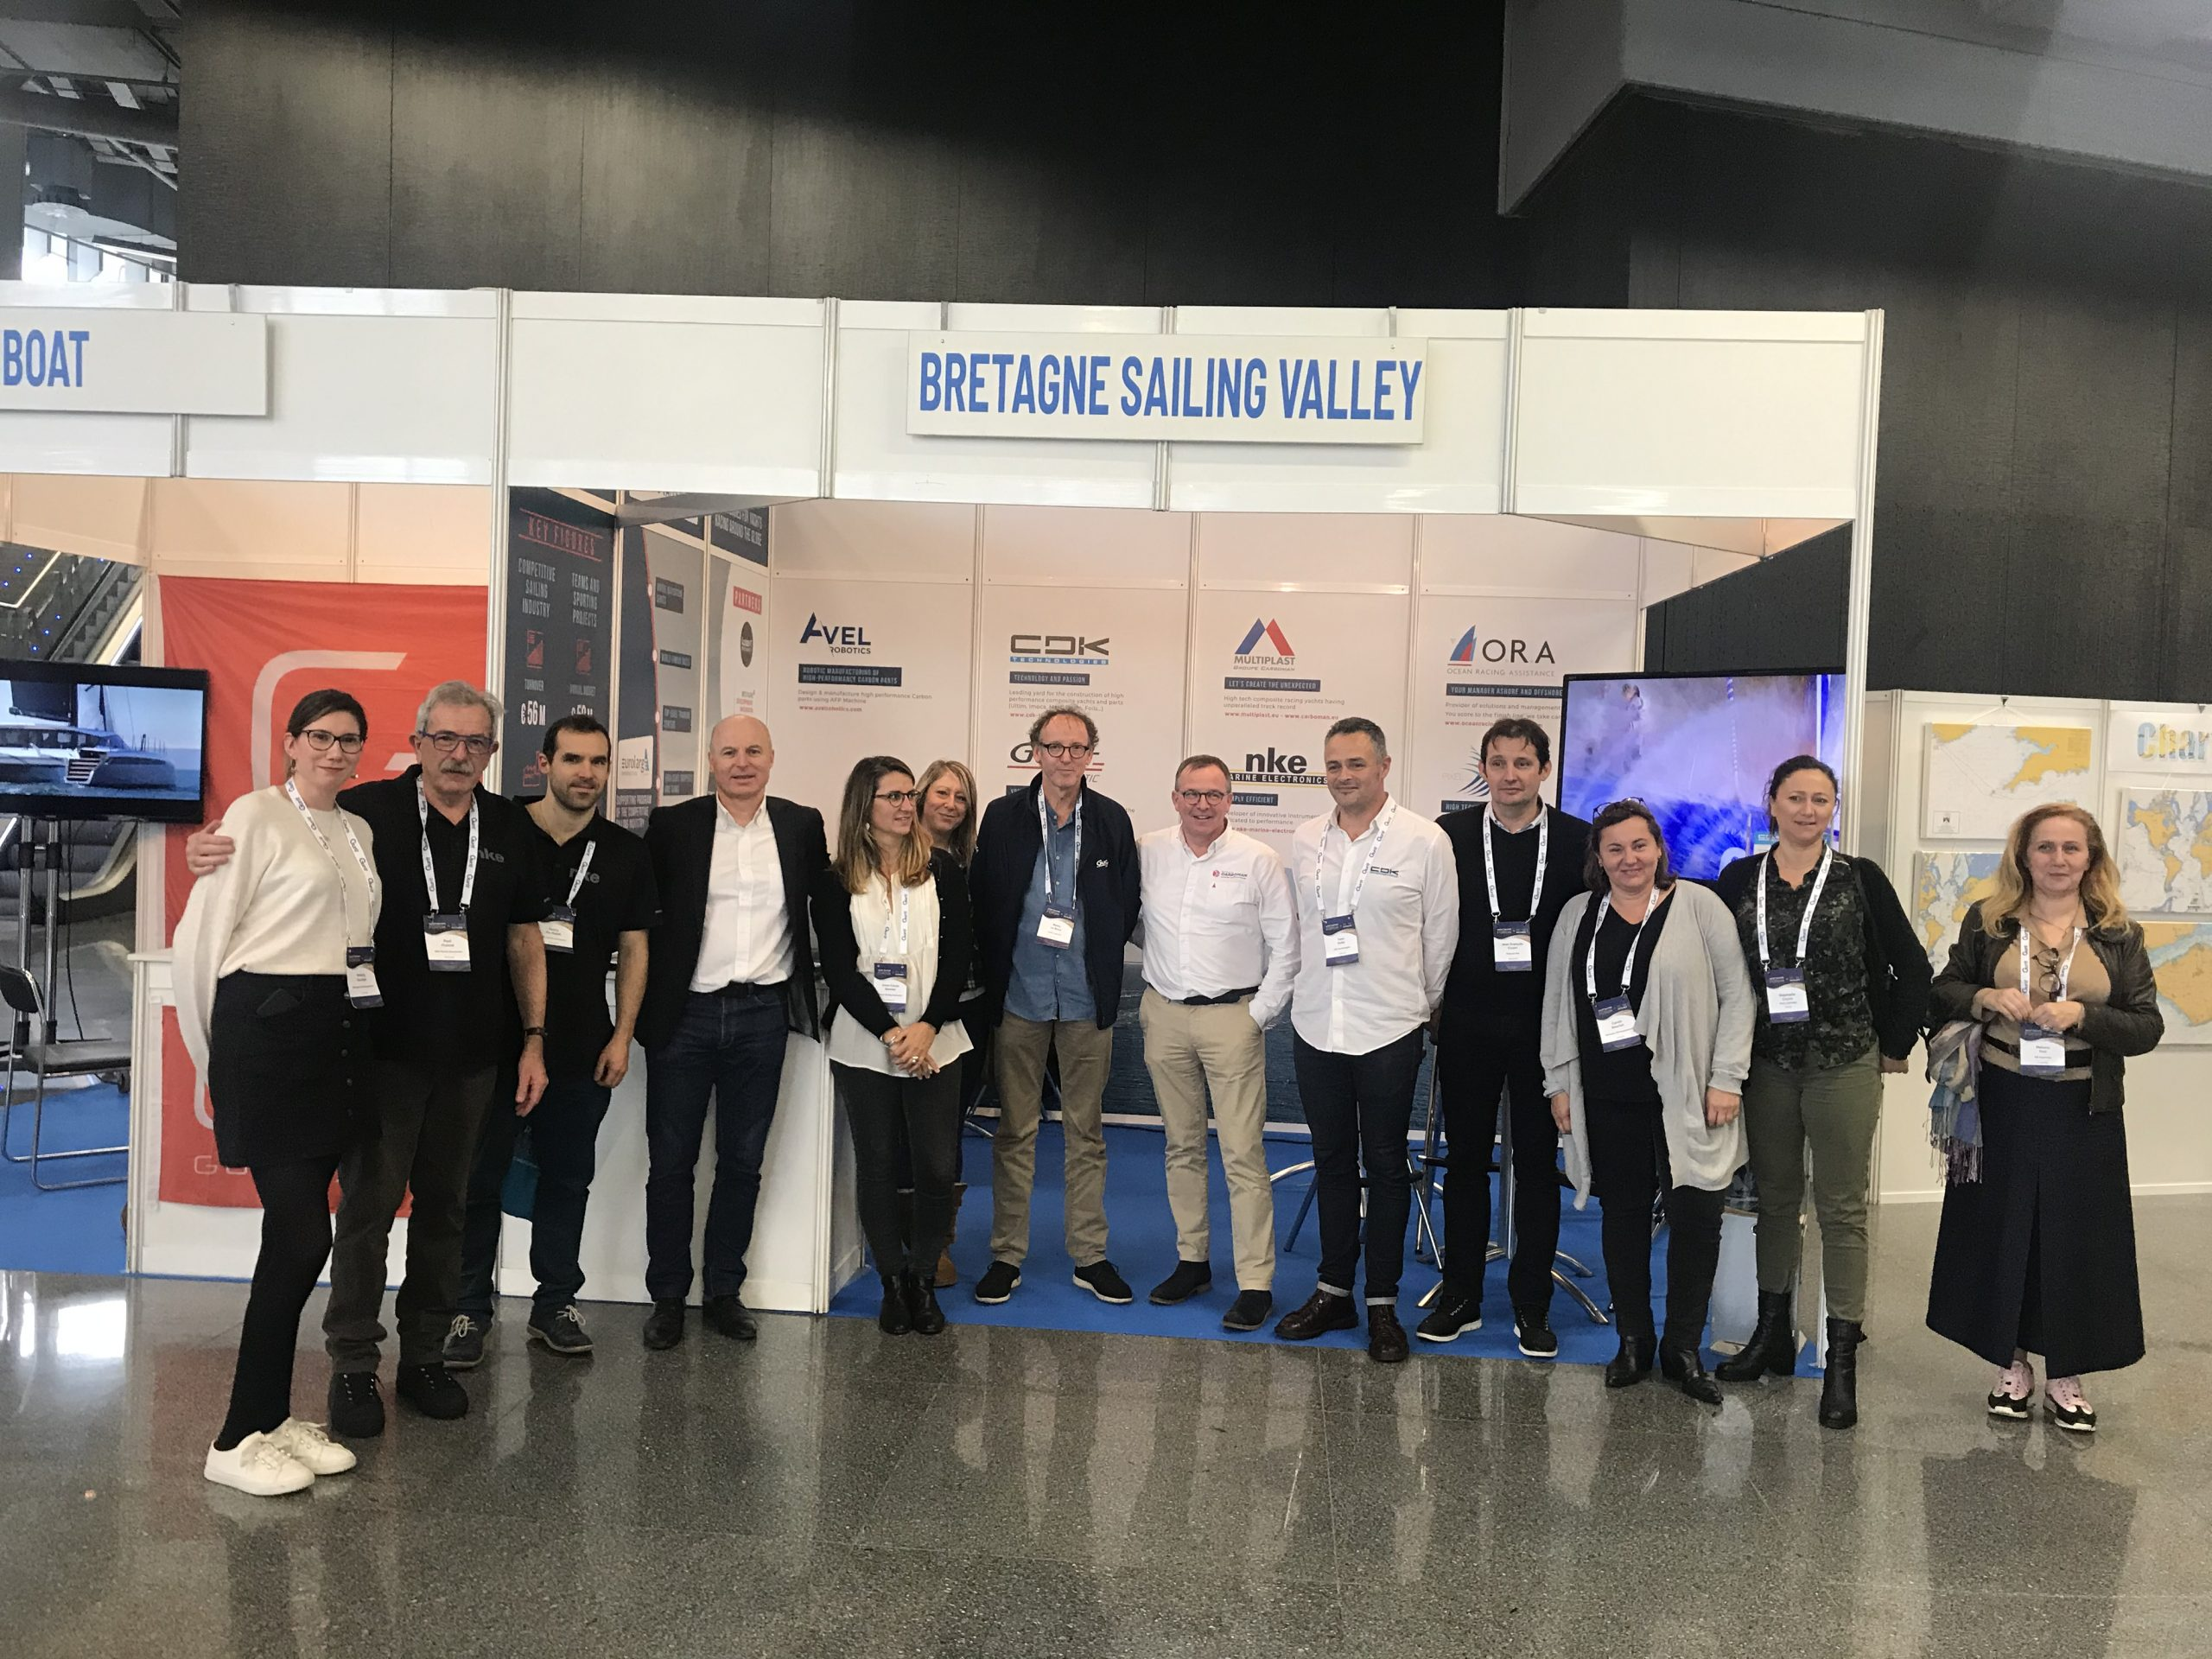 stand bretagne sailing valley yacht racing forum Bilbao 2019